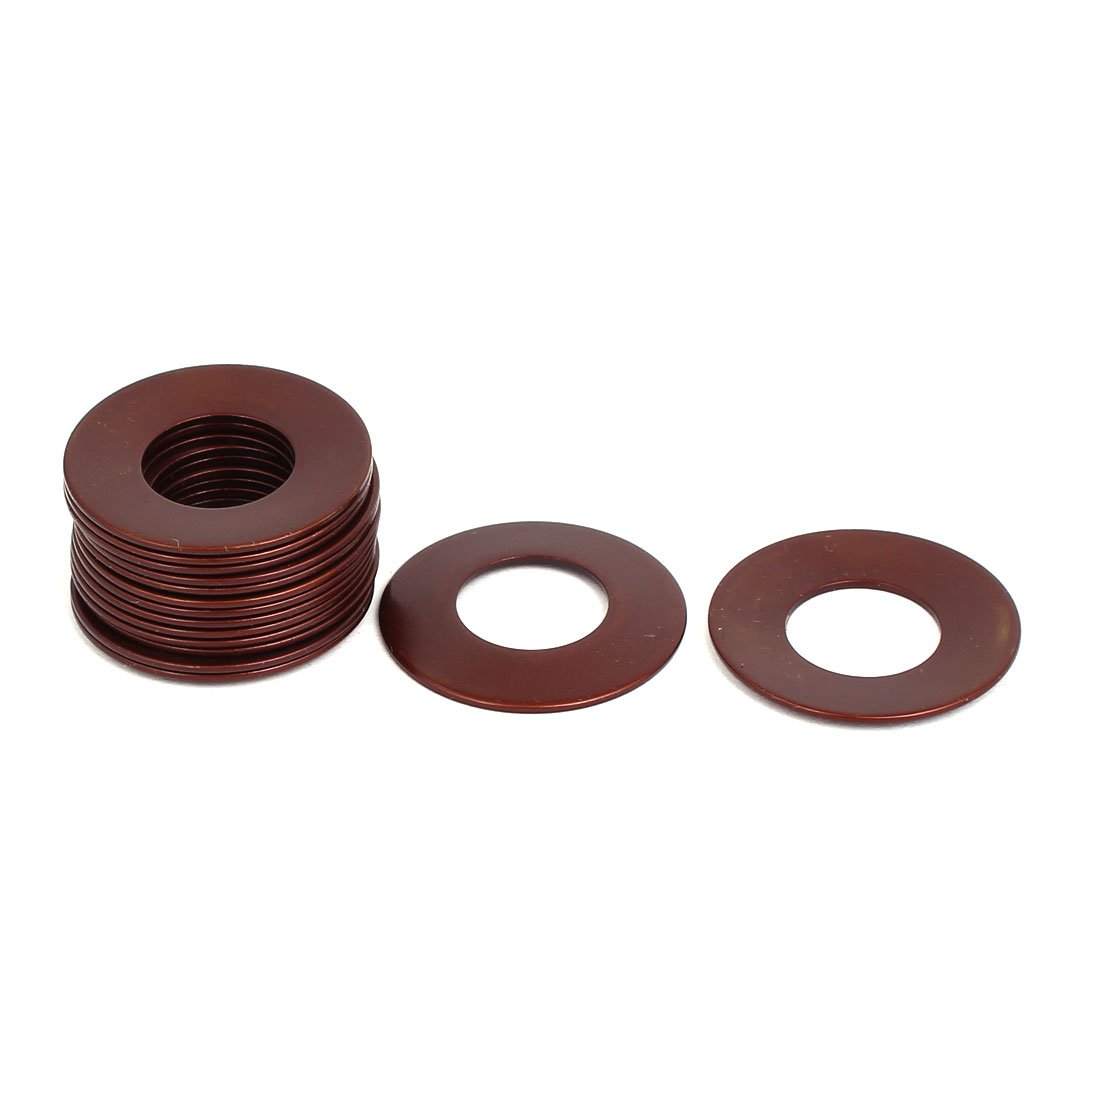 uxcell 25mm Outer Dia 12.2mm Inner Diameter 0.7mm Thickness Belleville Springs Washer 15pcs